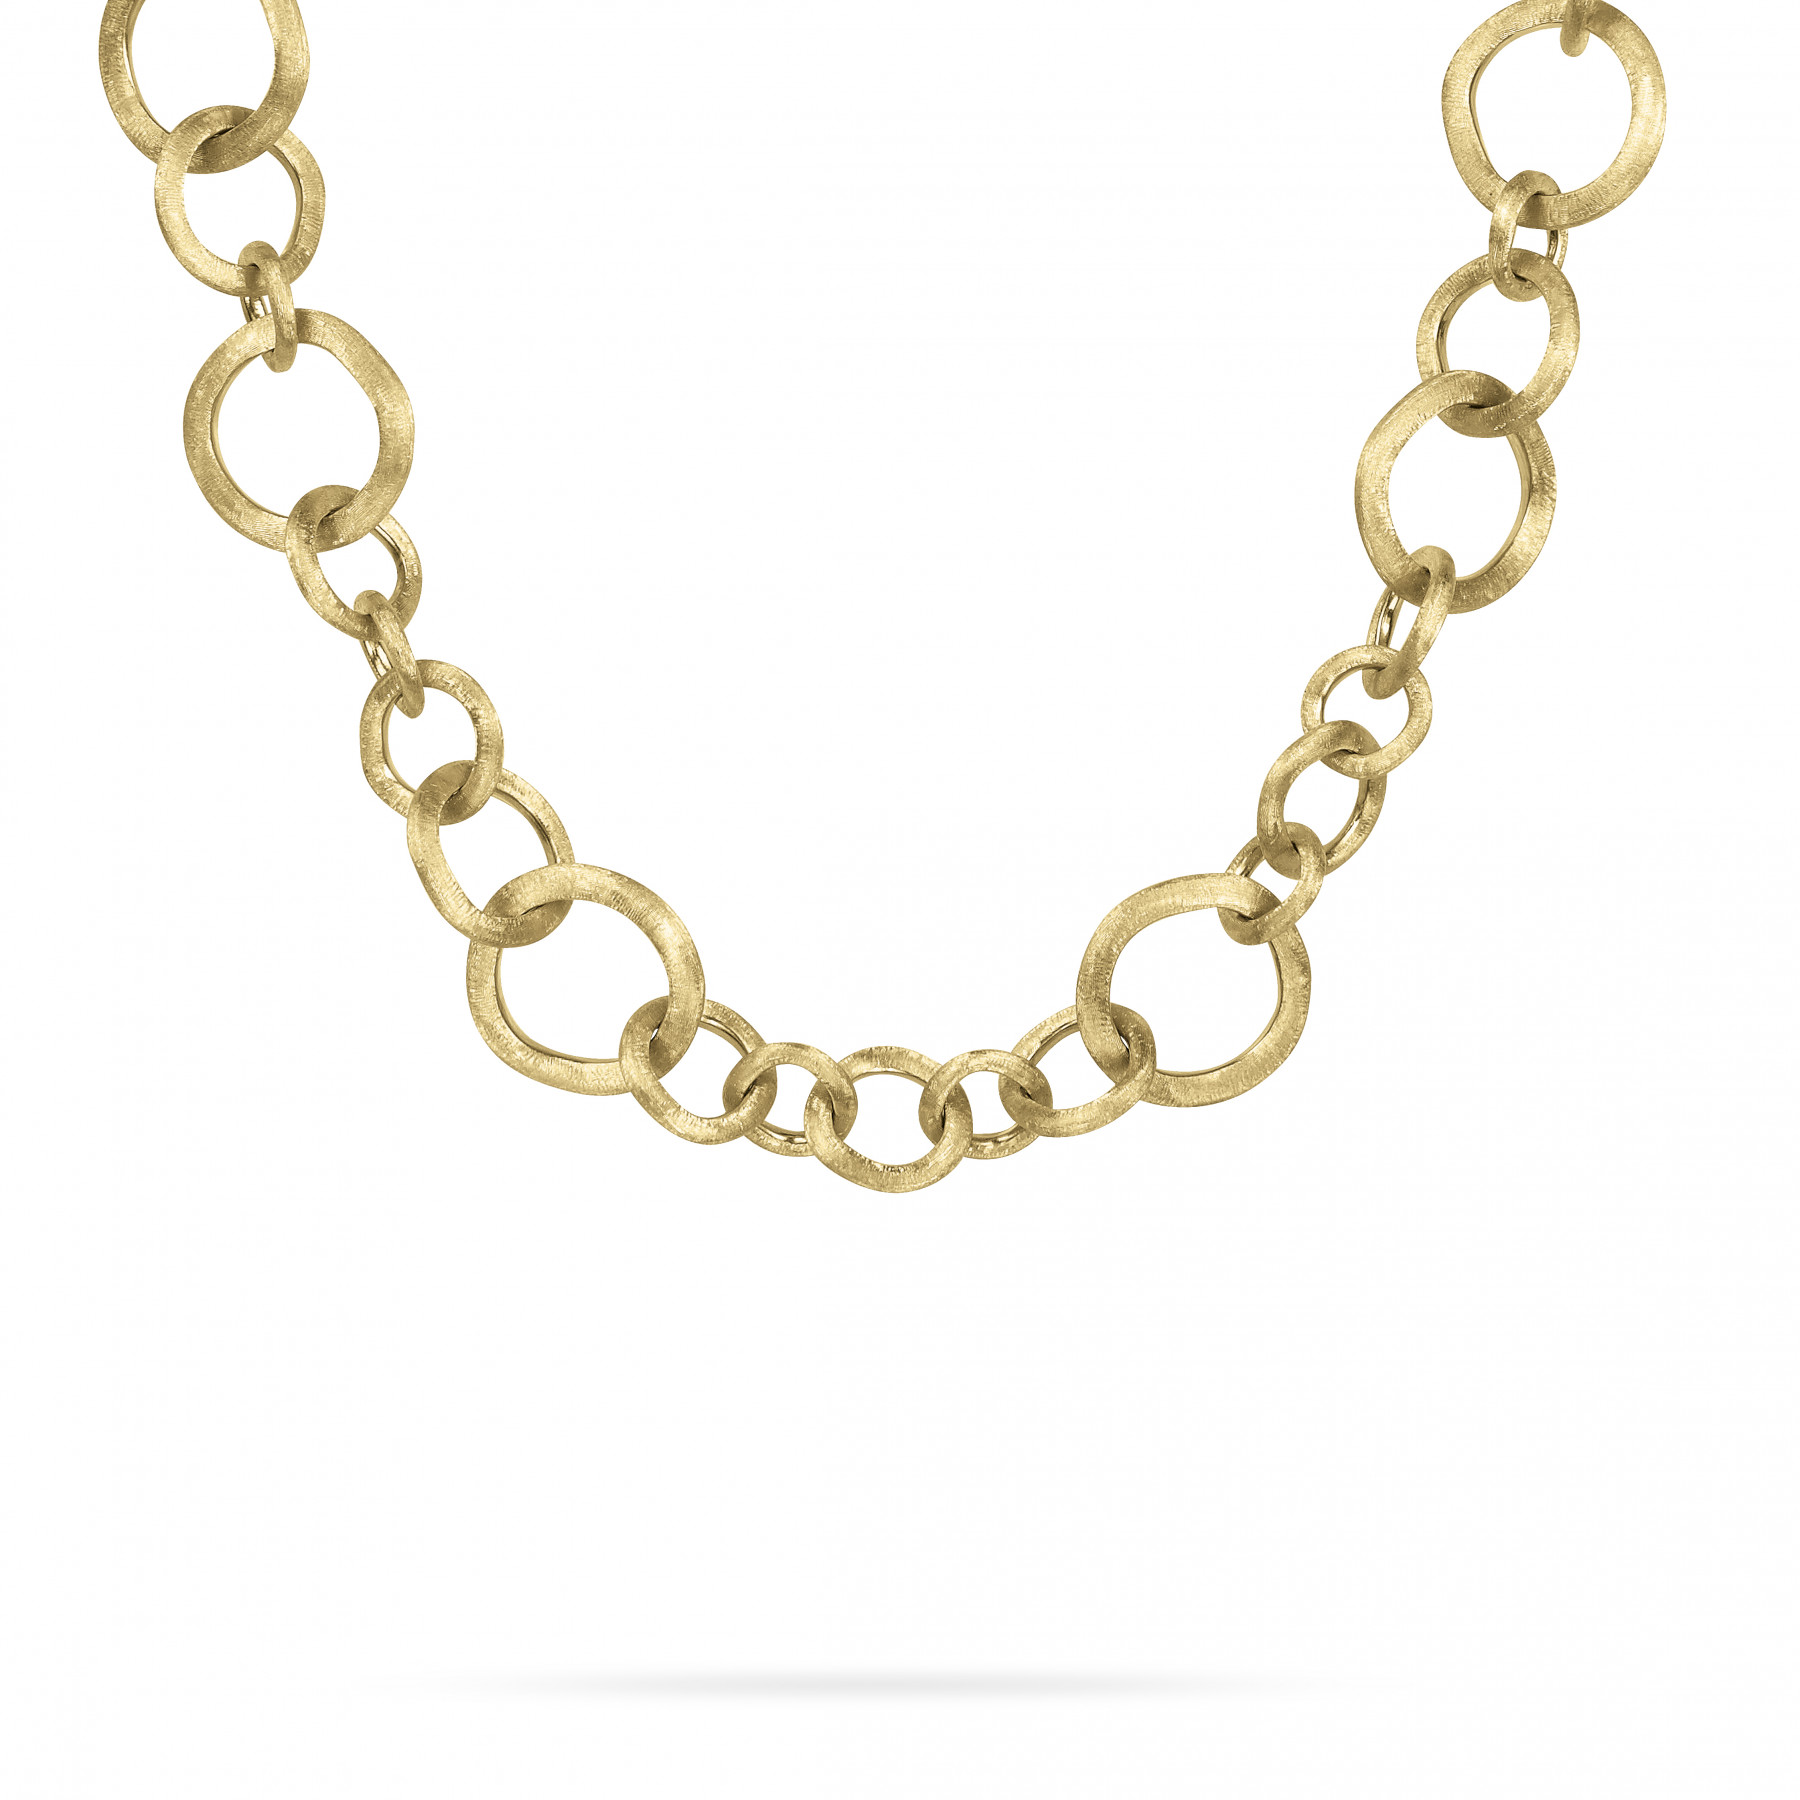 Marco Bicego Link Yellow Gold Necklace 17.75""